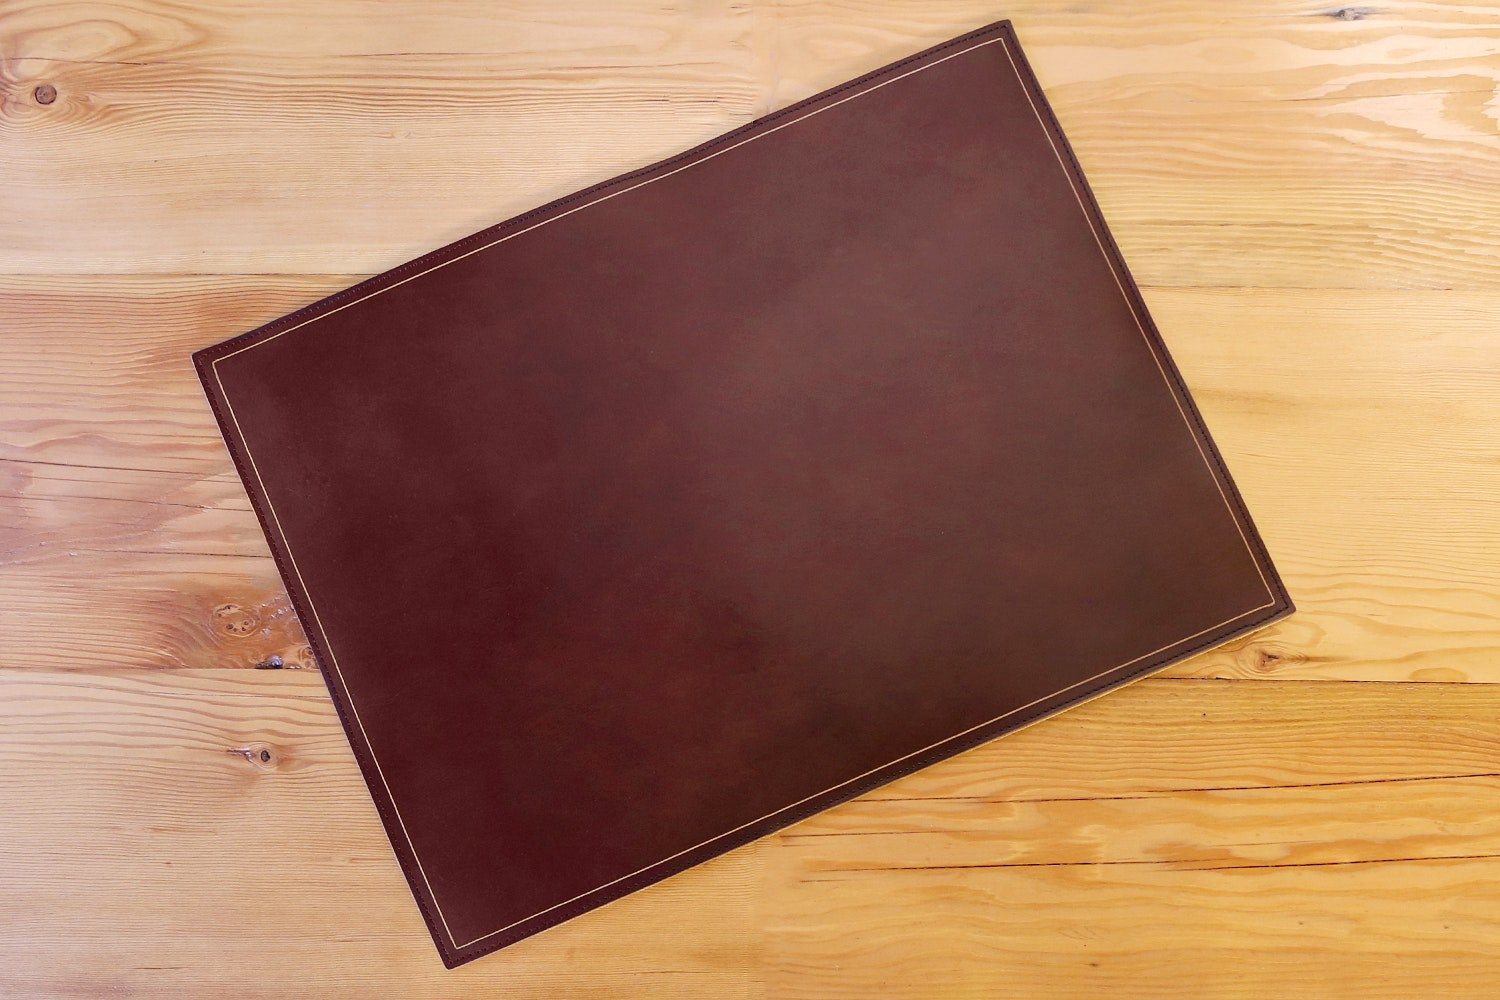 Originative Leather Desk Mat